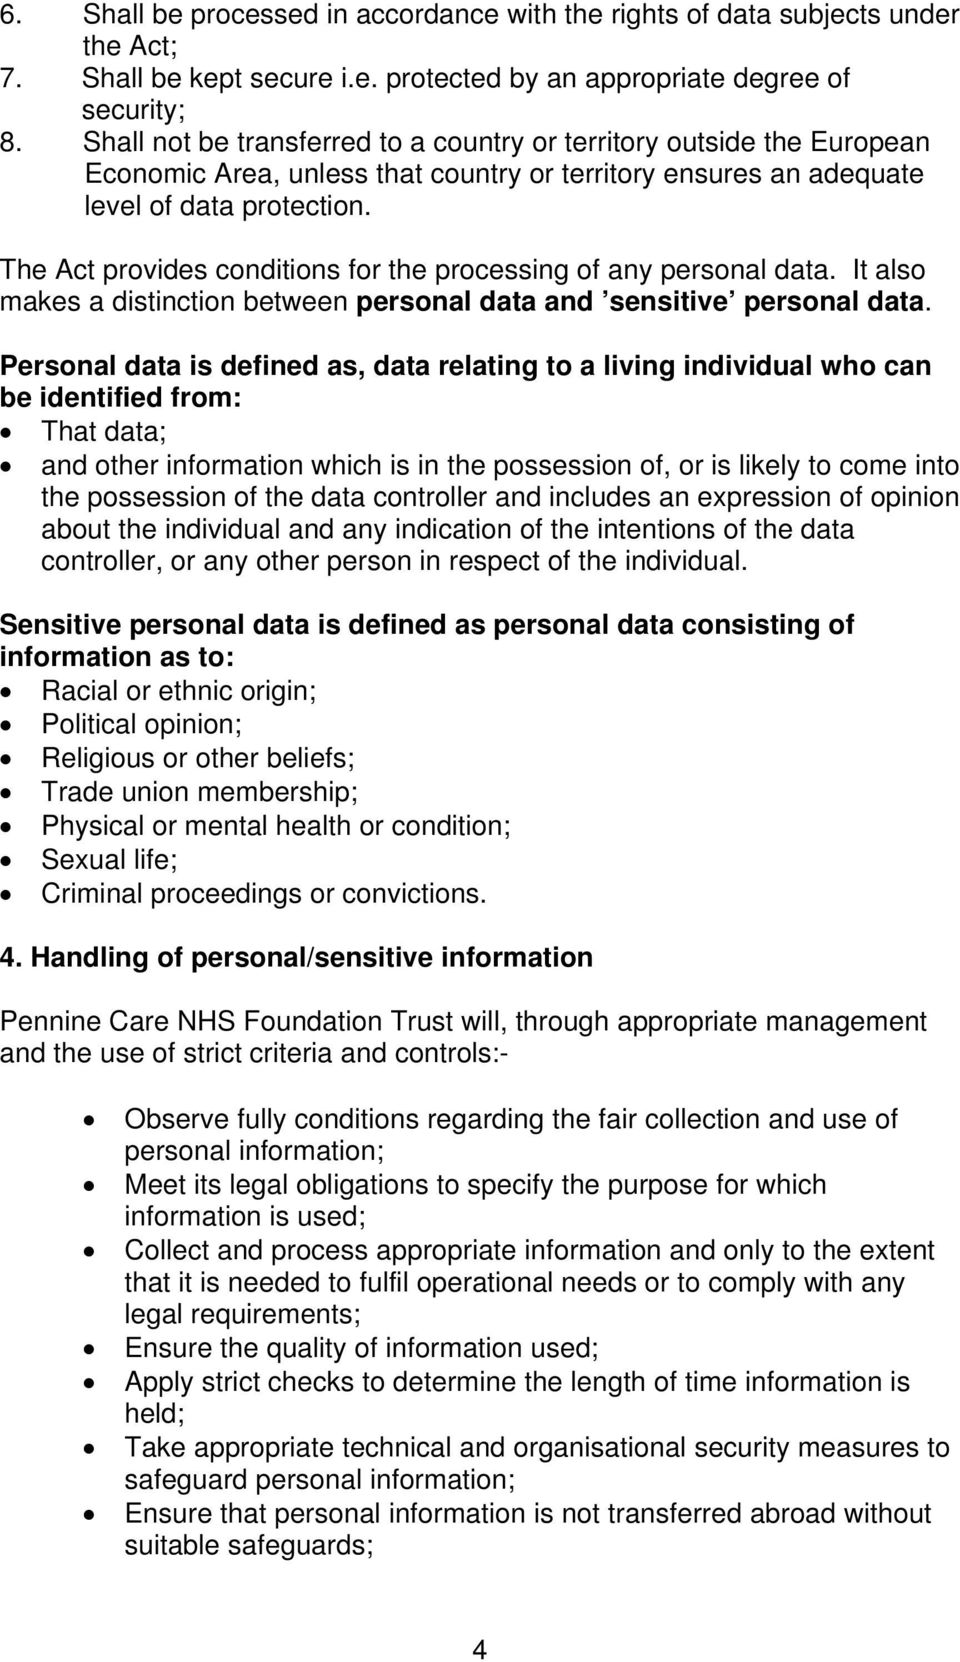 The Act provides conditions for the processing of any personal data. It also makes a distinction between personal data and sensitive personal data.